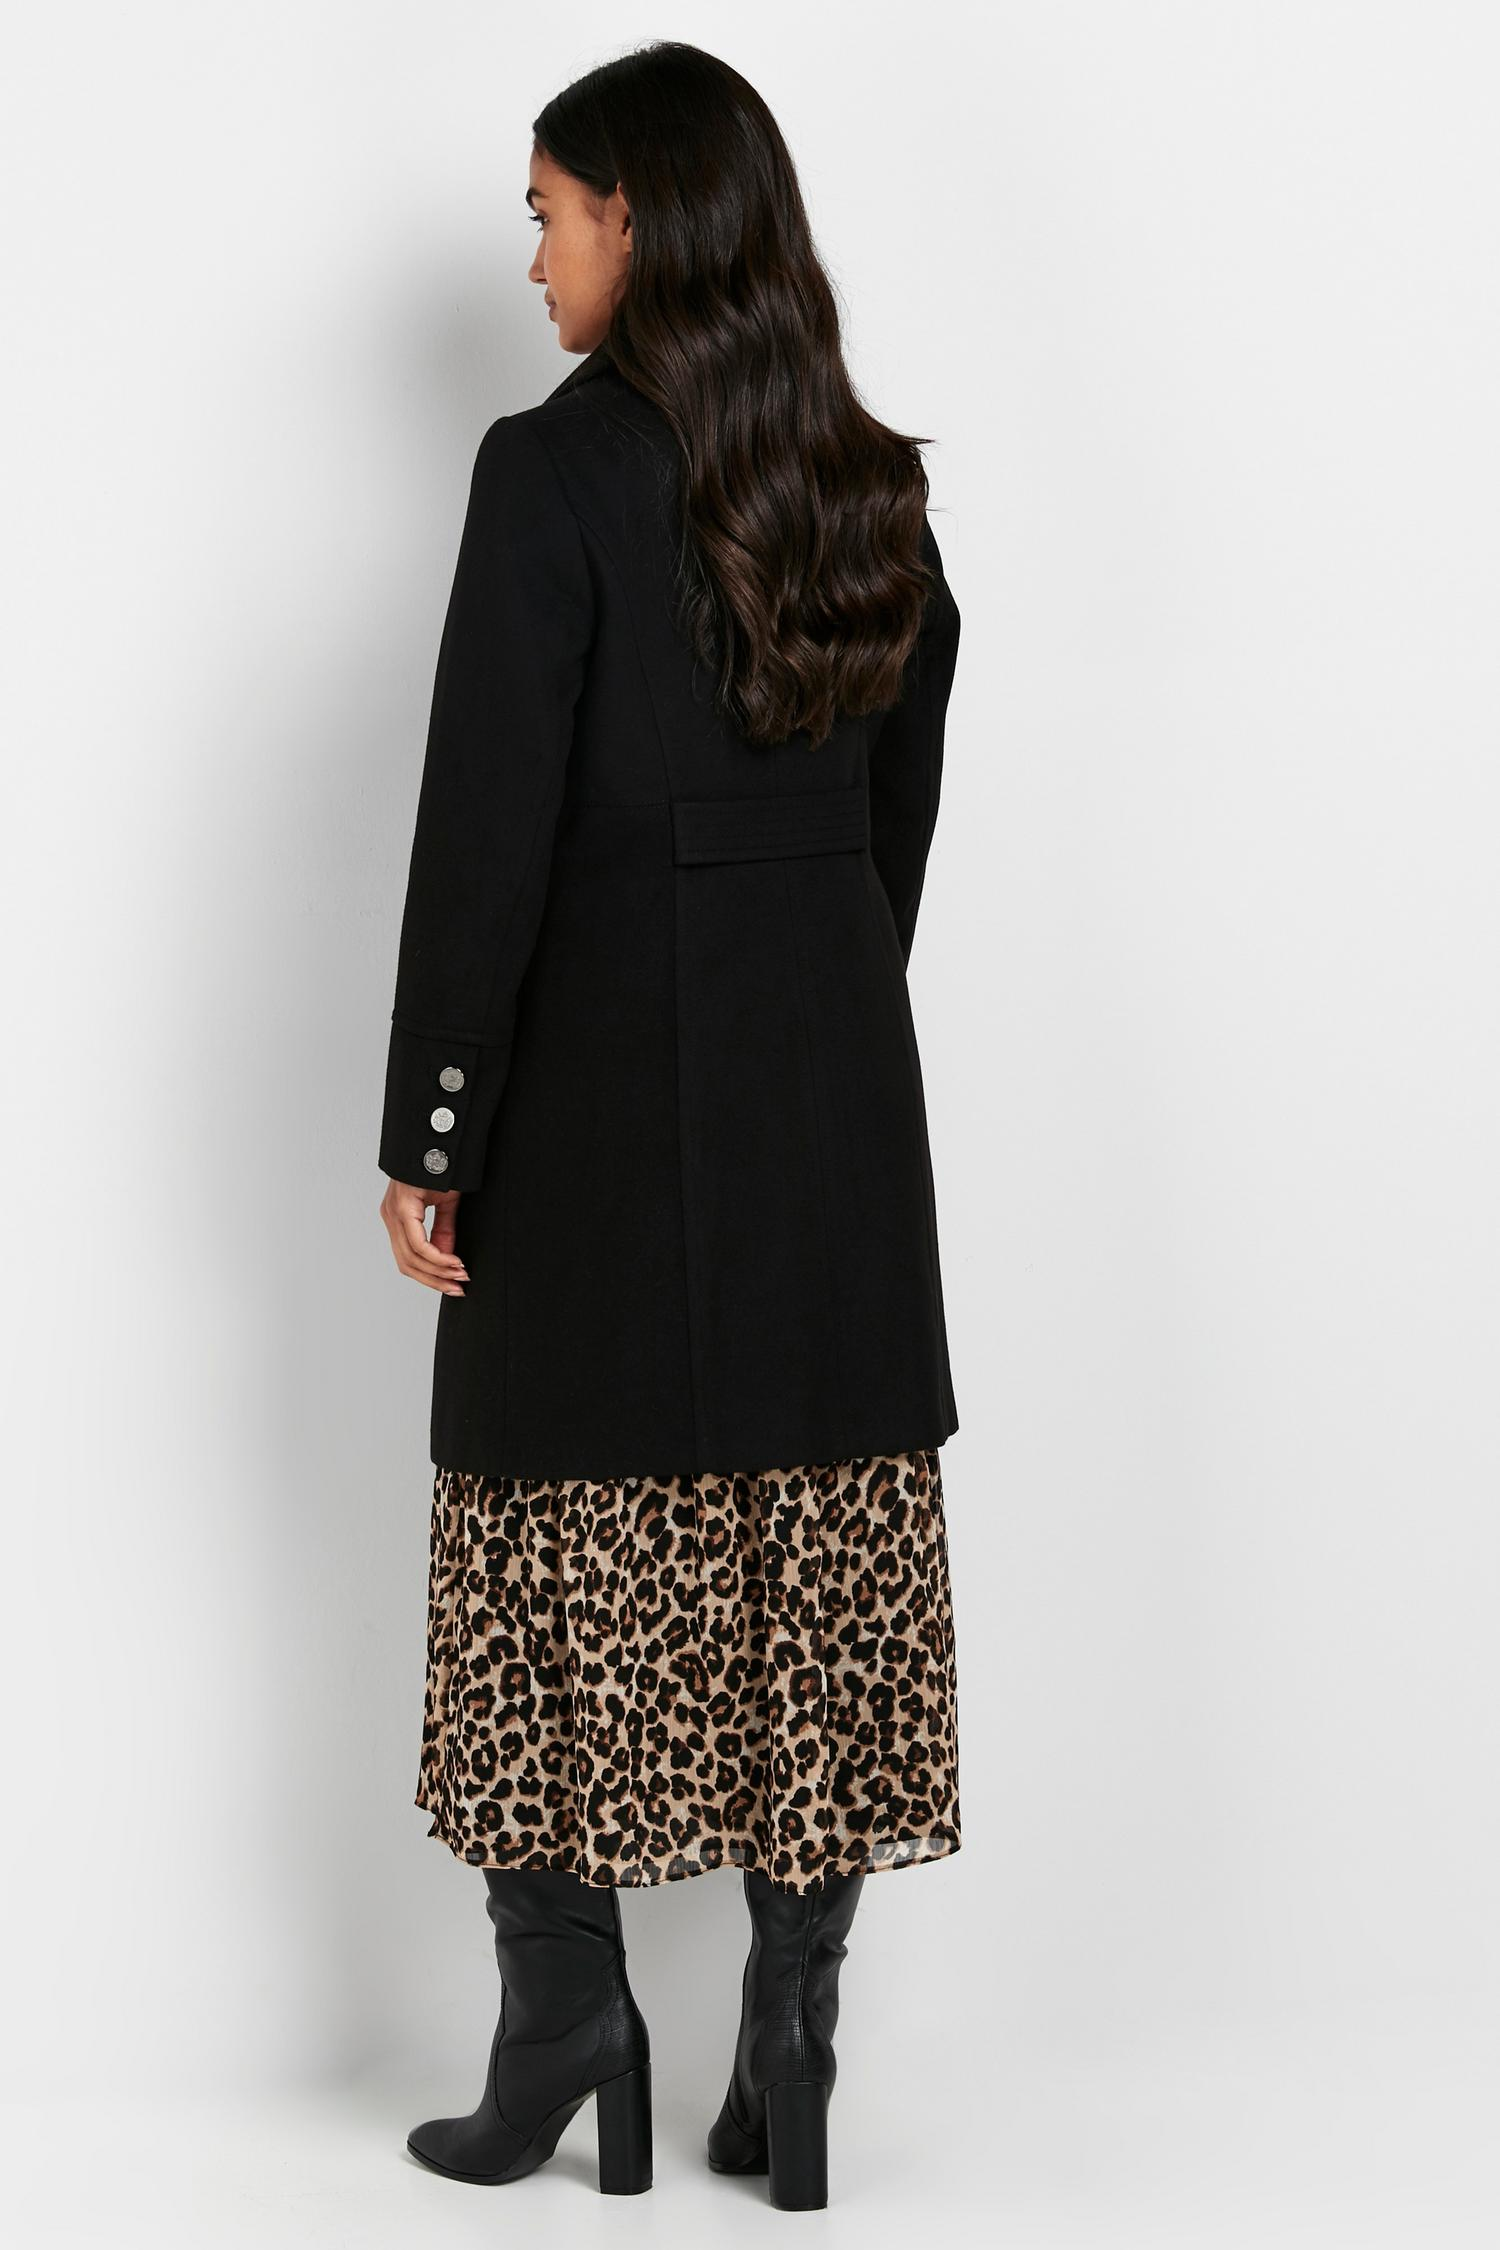 105 Black Faux Wool Coat image number 2